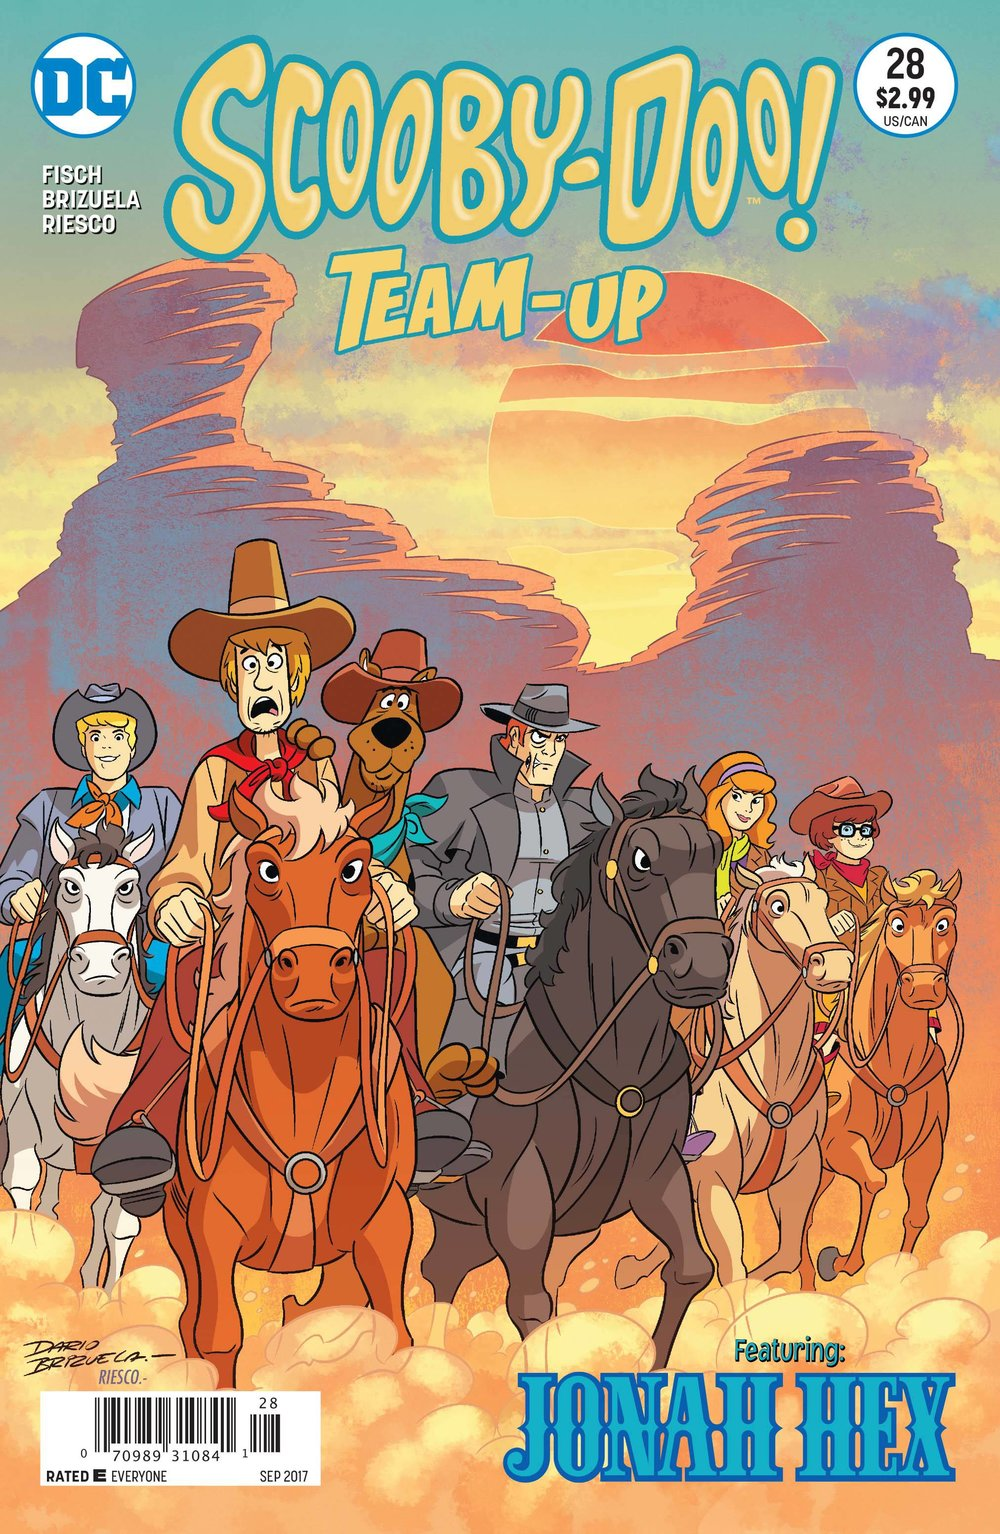 SCOOBY DOO TEAM UP 28.jpg